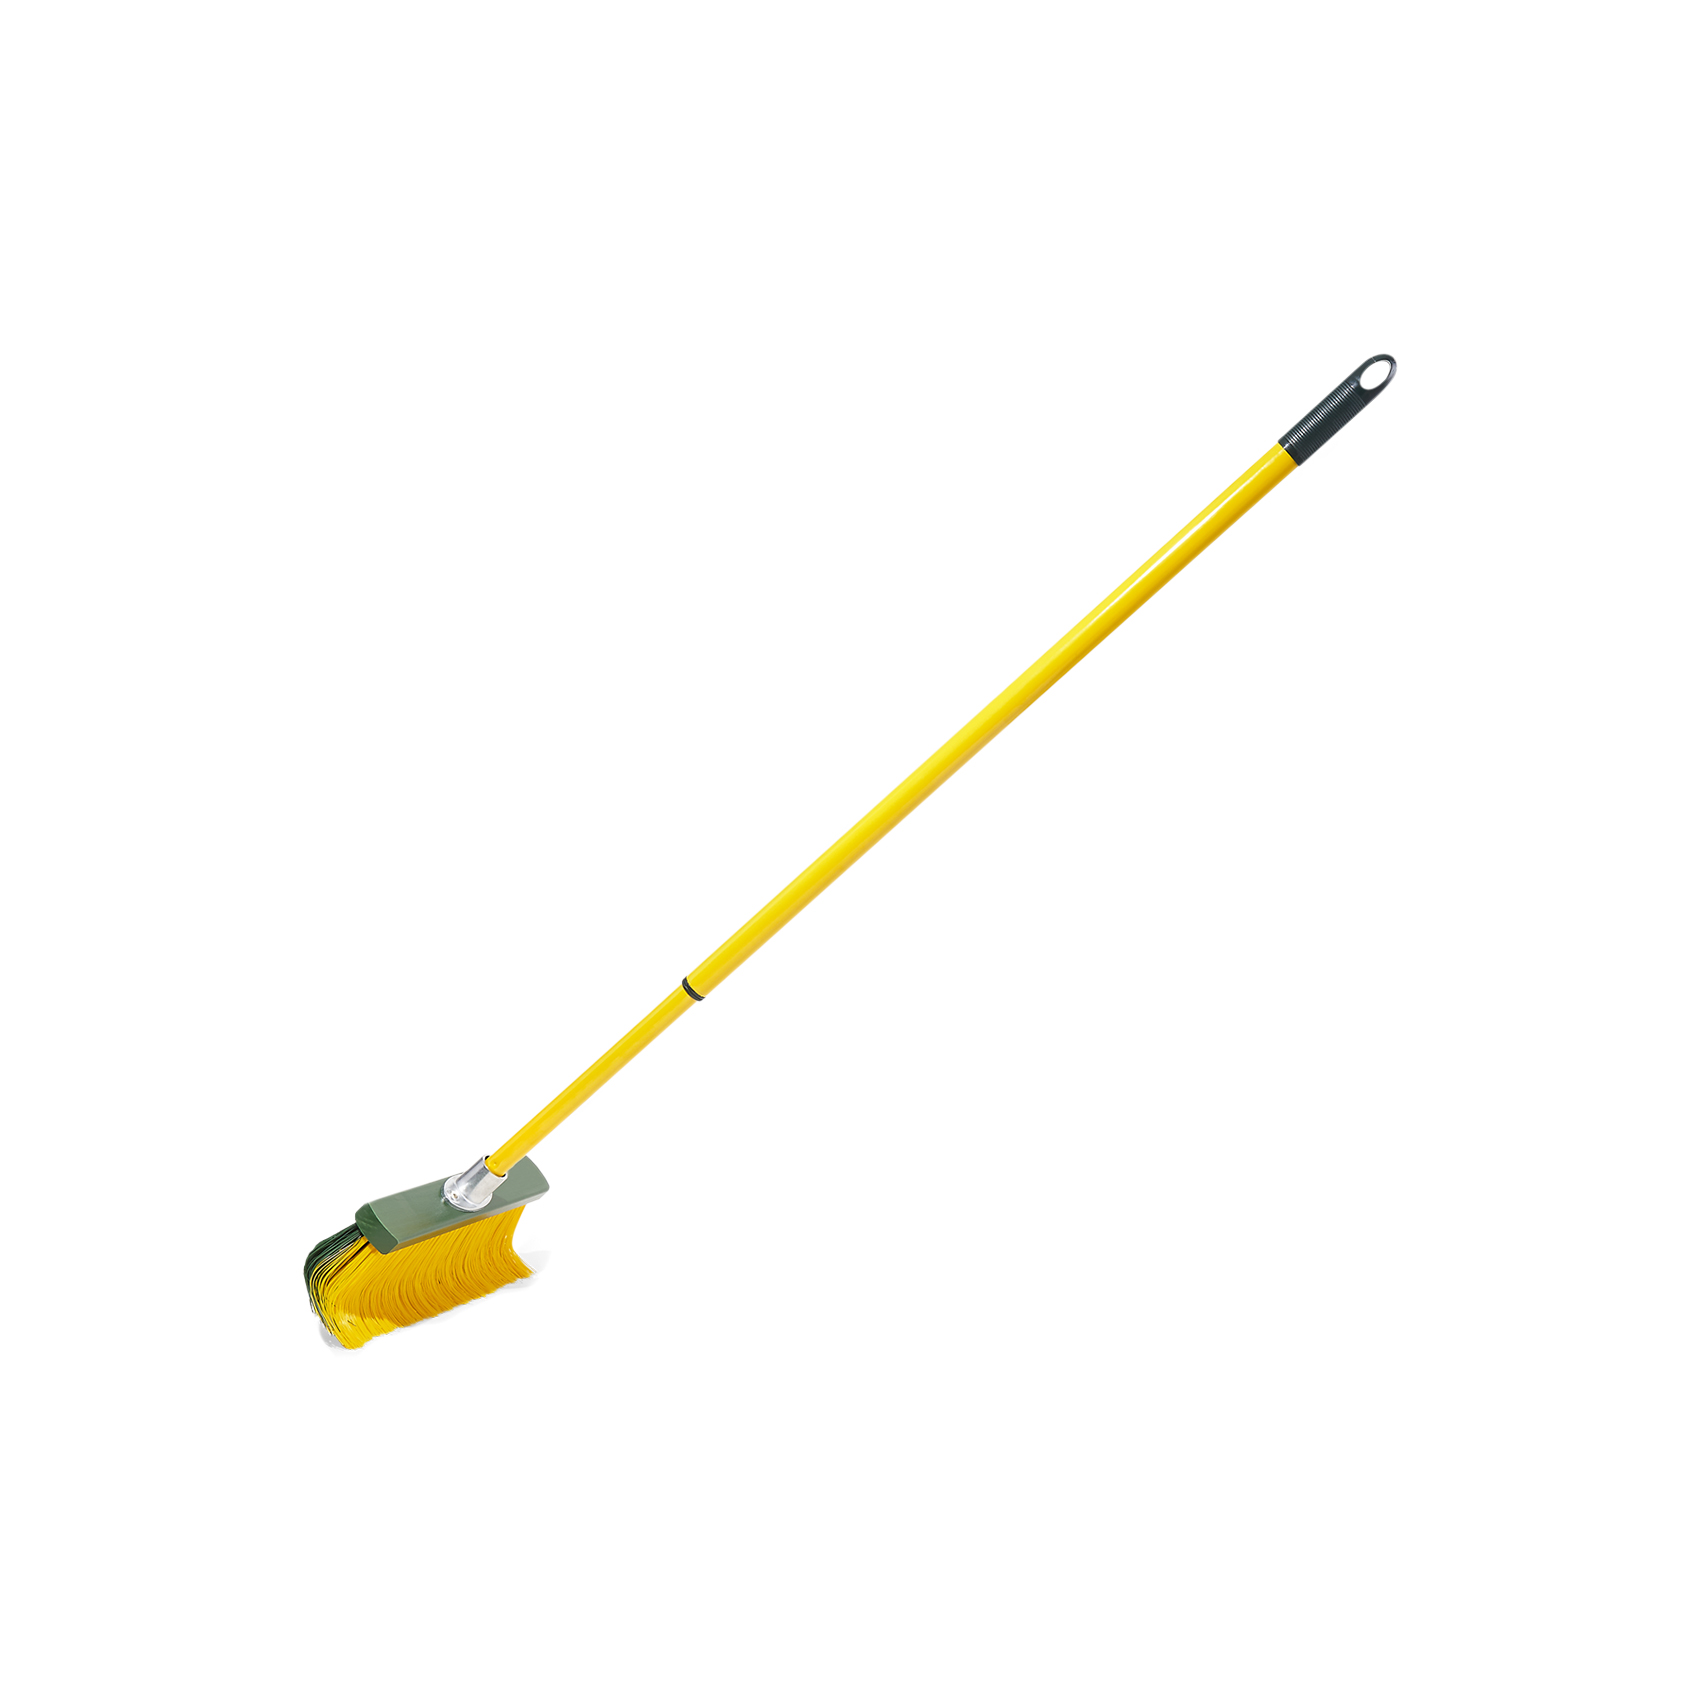 The Renegade Broom